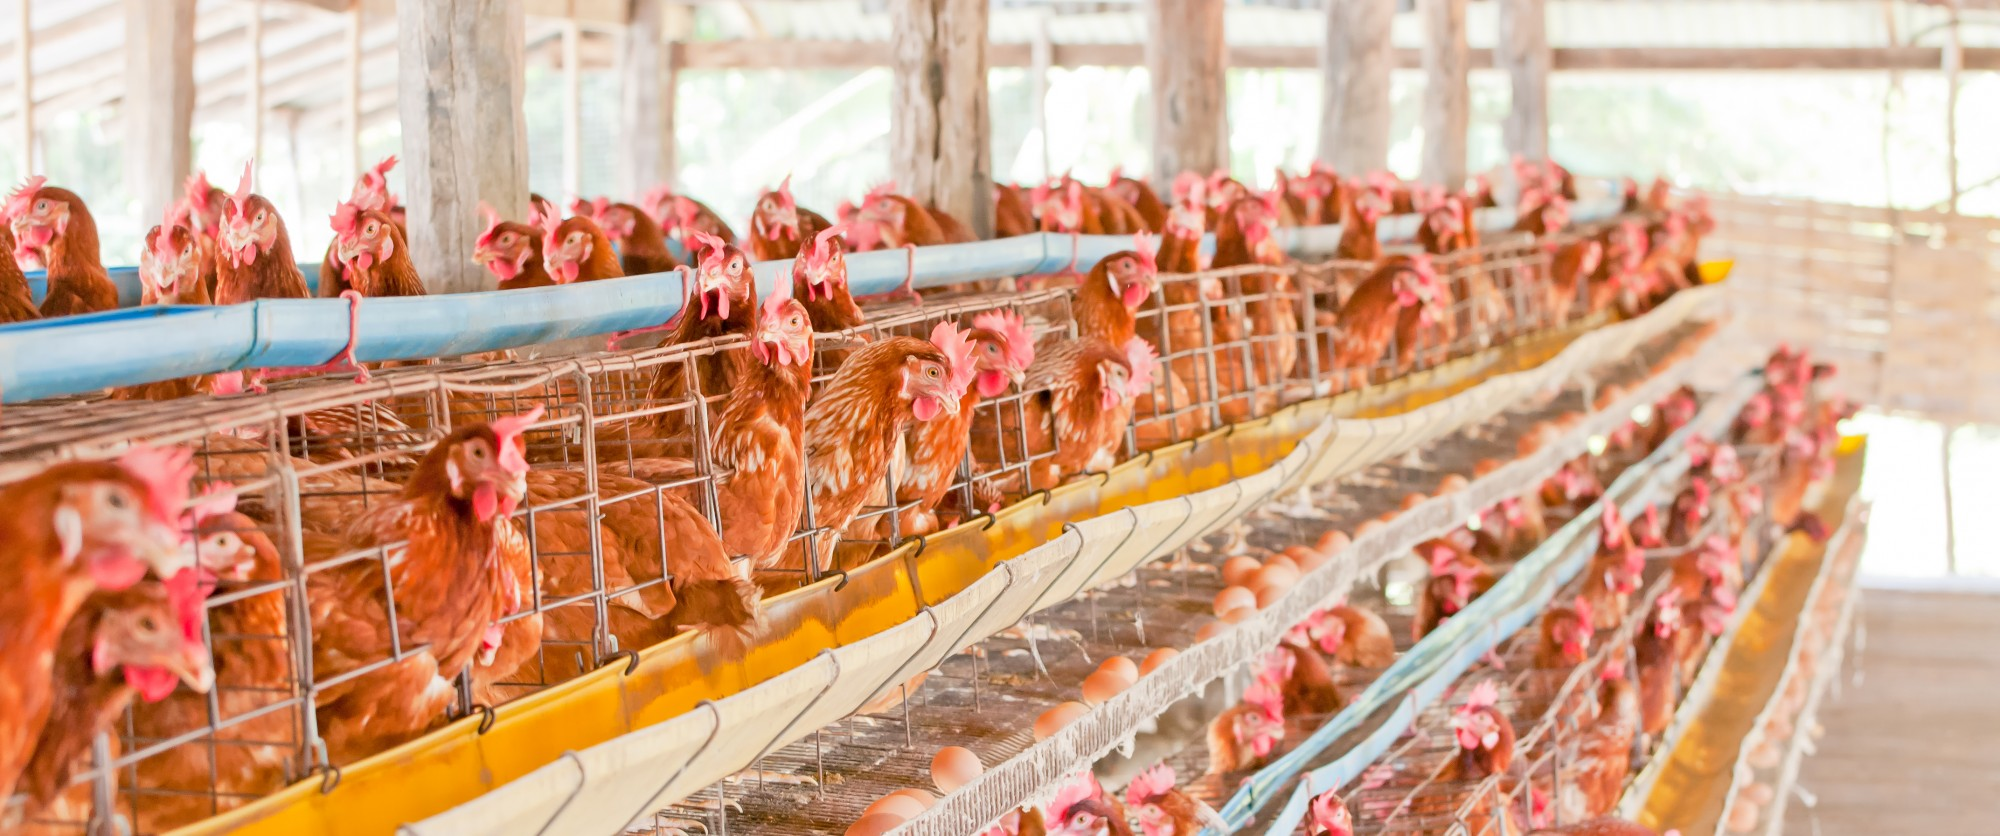 The use of Battery Cages in the Egg Industry